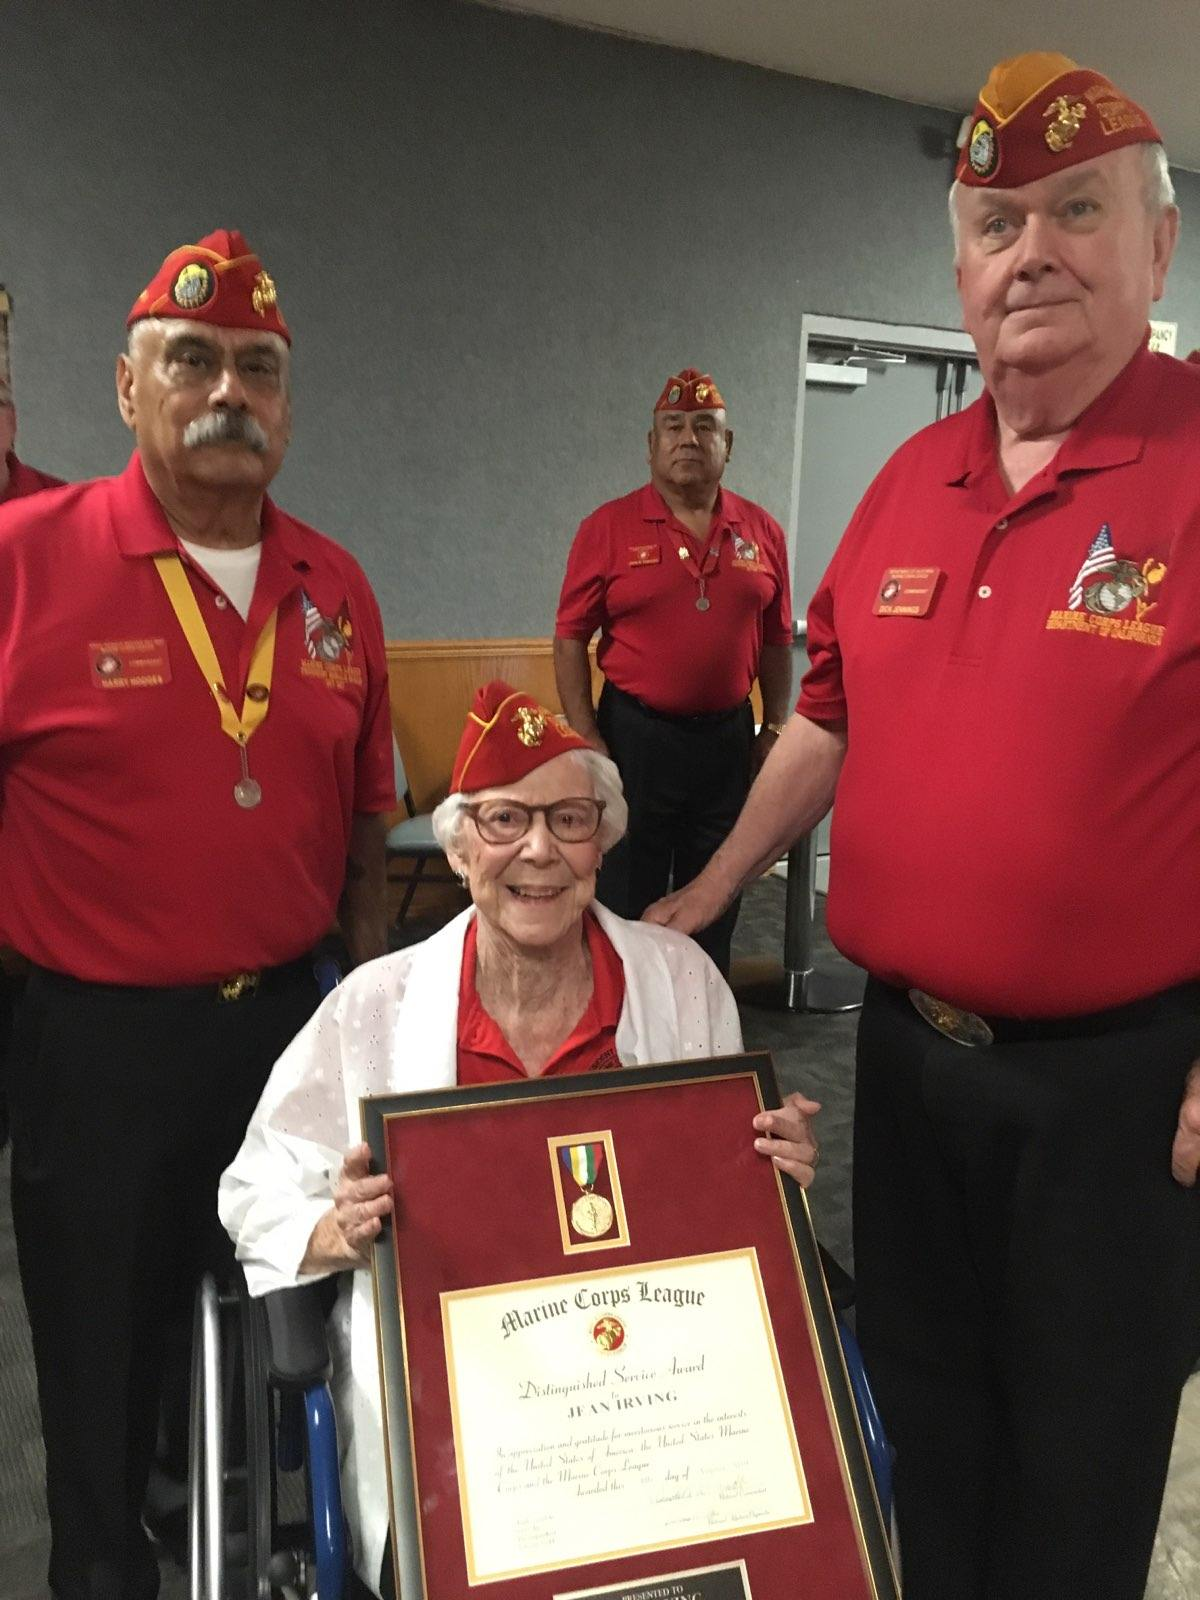 """August 6, 2019   Commandant Harry Hodges and Department of California Commandant Dick Jennings present to Marine Jean Irving the Marine Corps Leagues highest award """"Distinguished Citizen Award"""" at the September General Meeting. This award was presented to Commandant Jennings, who was accepting for Miss Jean at the MCL National Convention in Billings, Montana."""